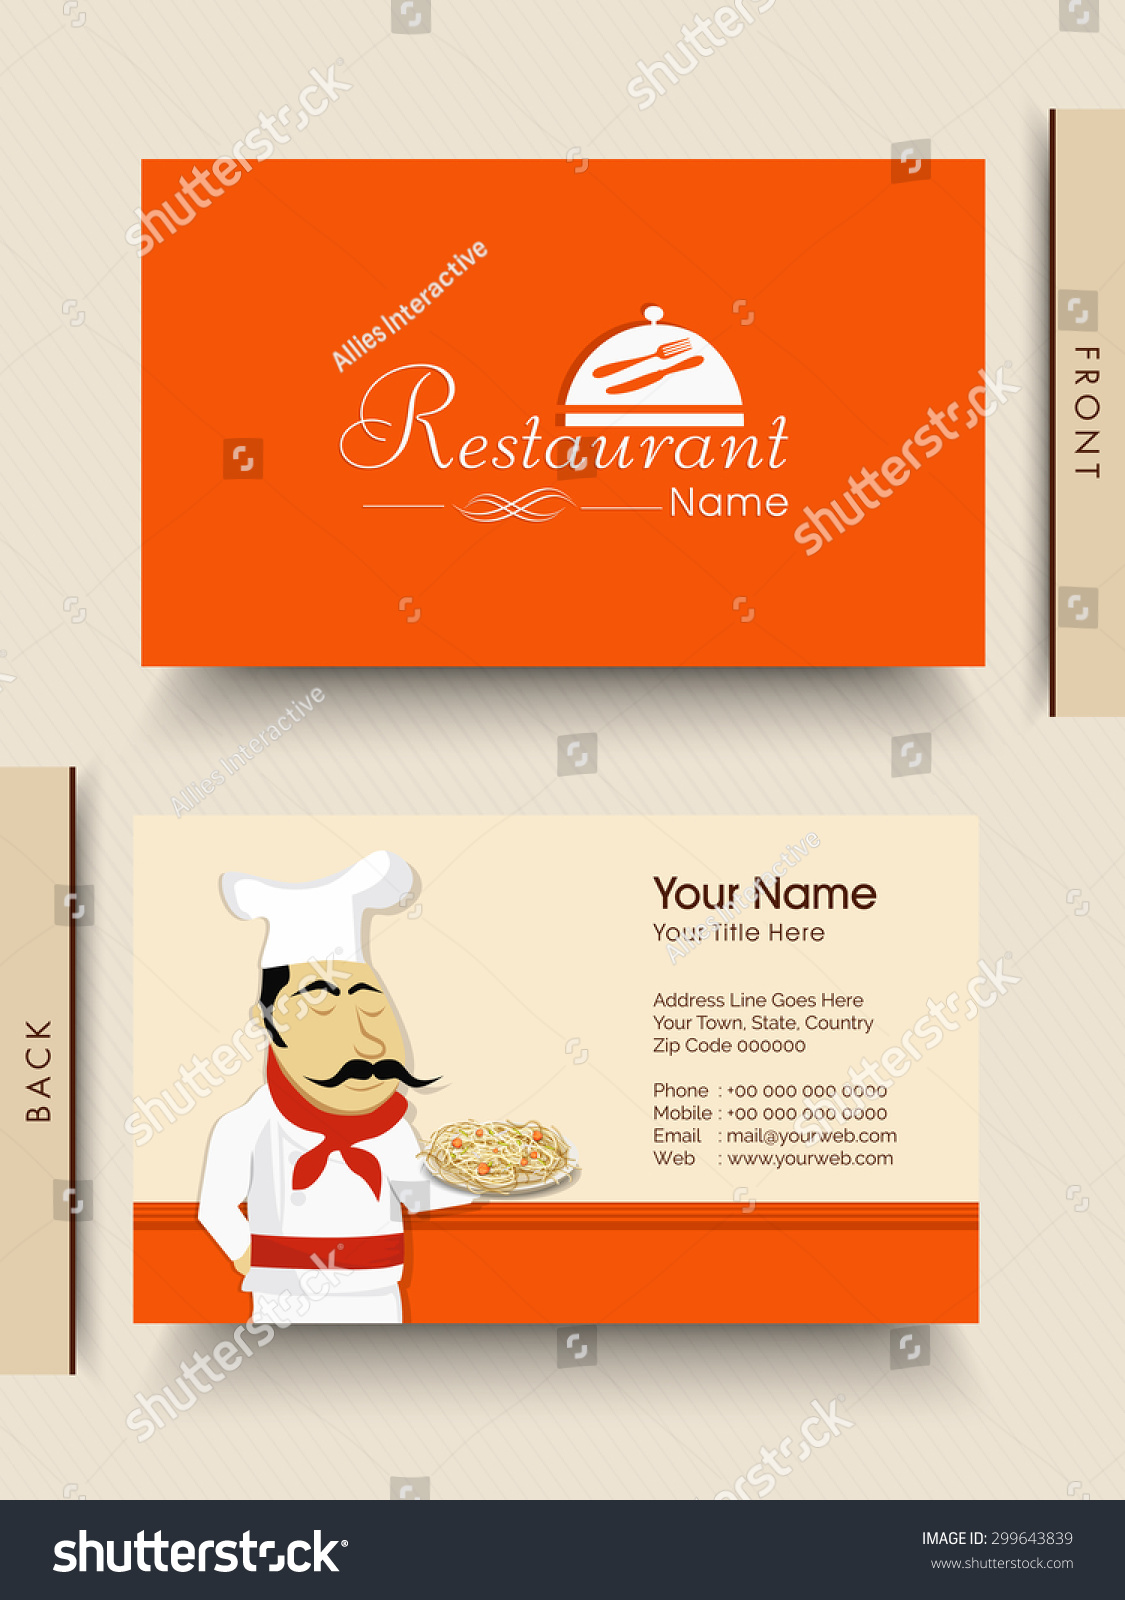 Stylish Business Visiting Card Design Illustration Stock Vector ...